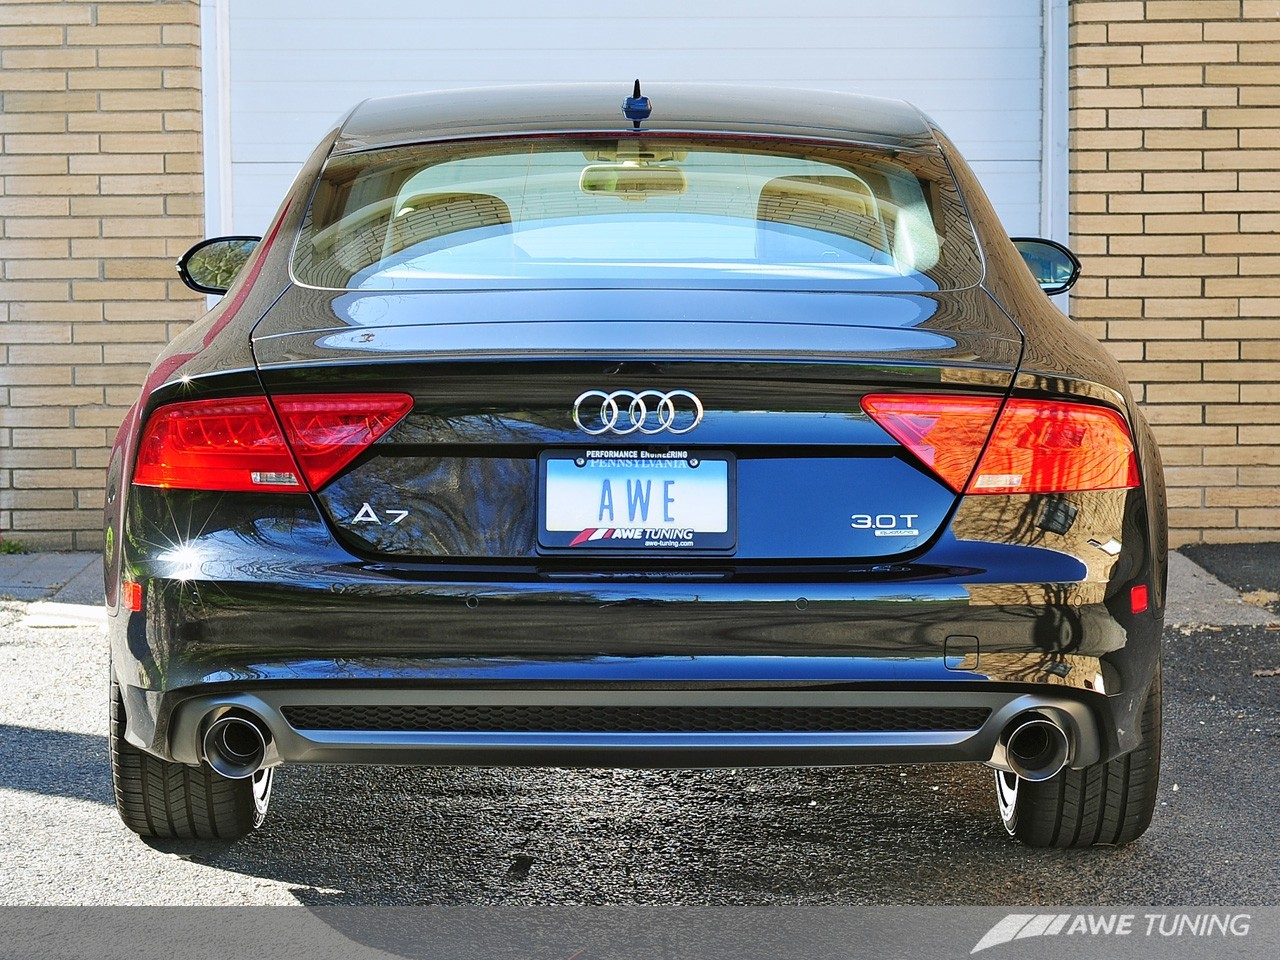 audi a7 exhaust awe tuning AWE-A7-3.0T-EXHAUST_GROUP